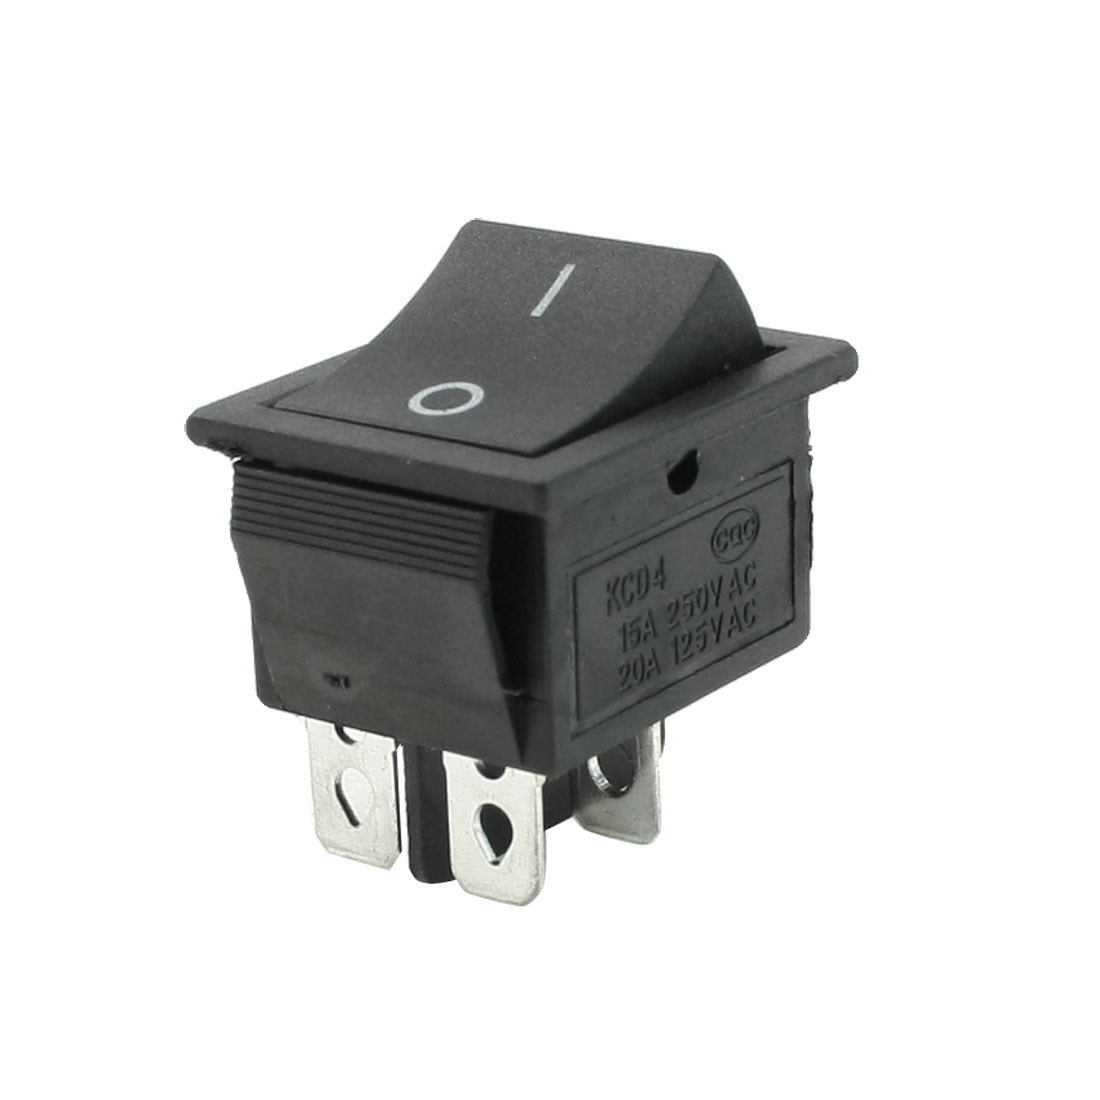 AC 250V 15A 125V 20A Black ON/OFF Snap In Boat Rocker Switch